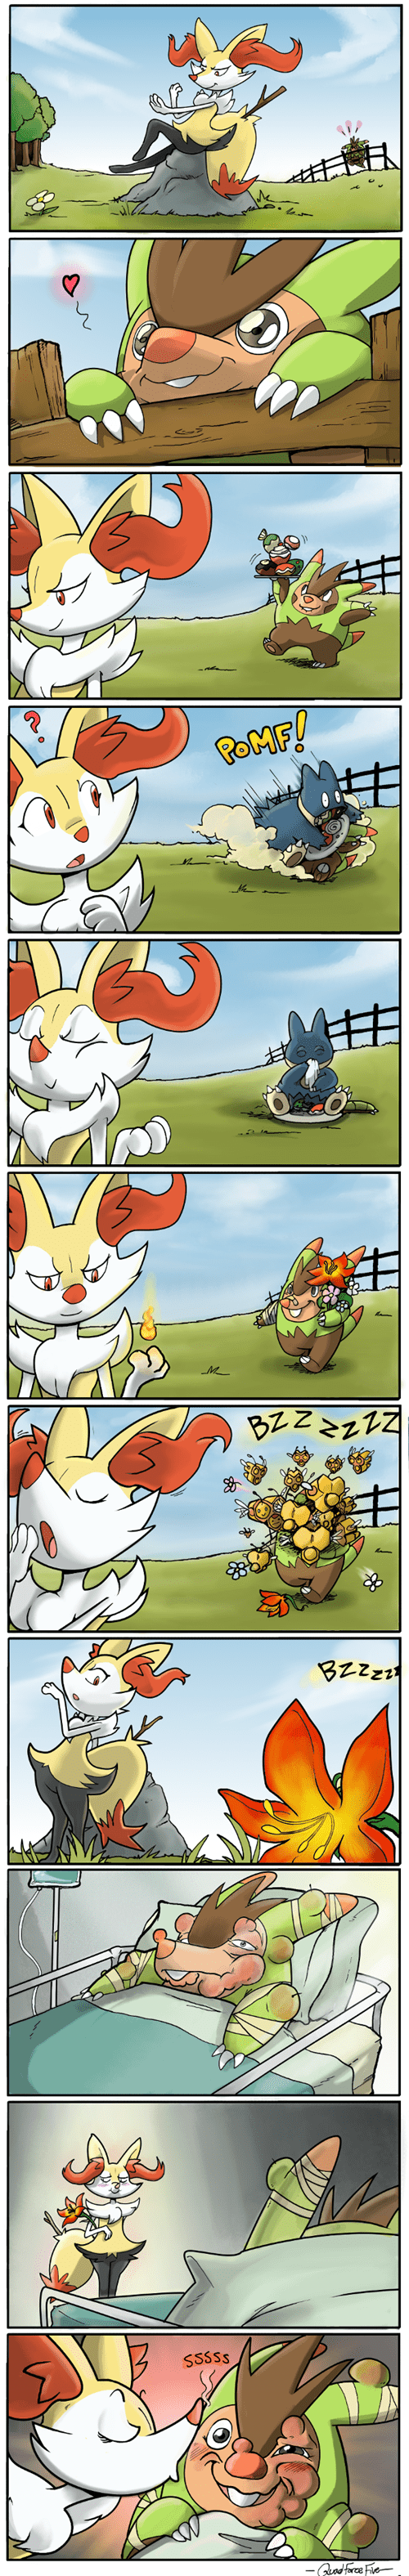 fennekin Pokémon Fan Art web comics - 8233092352